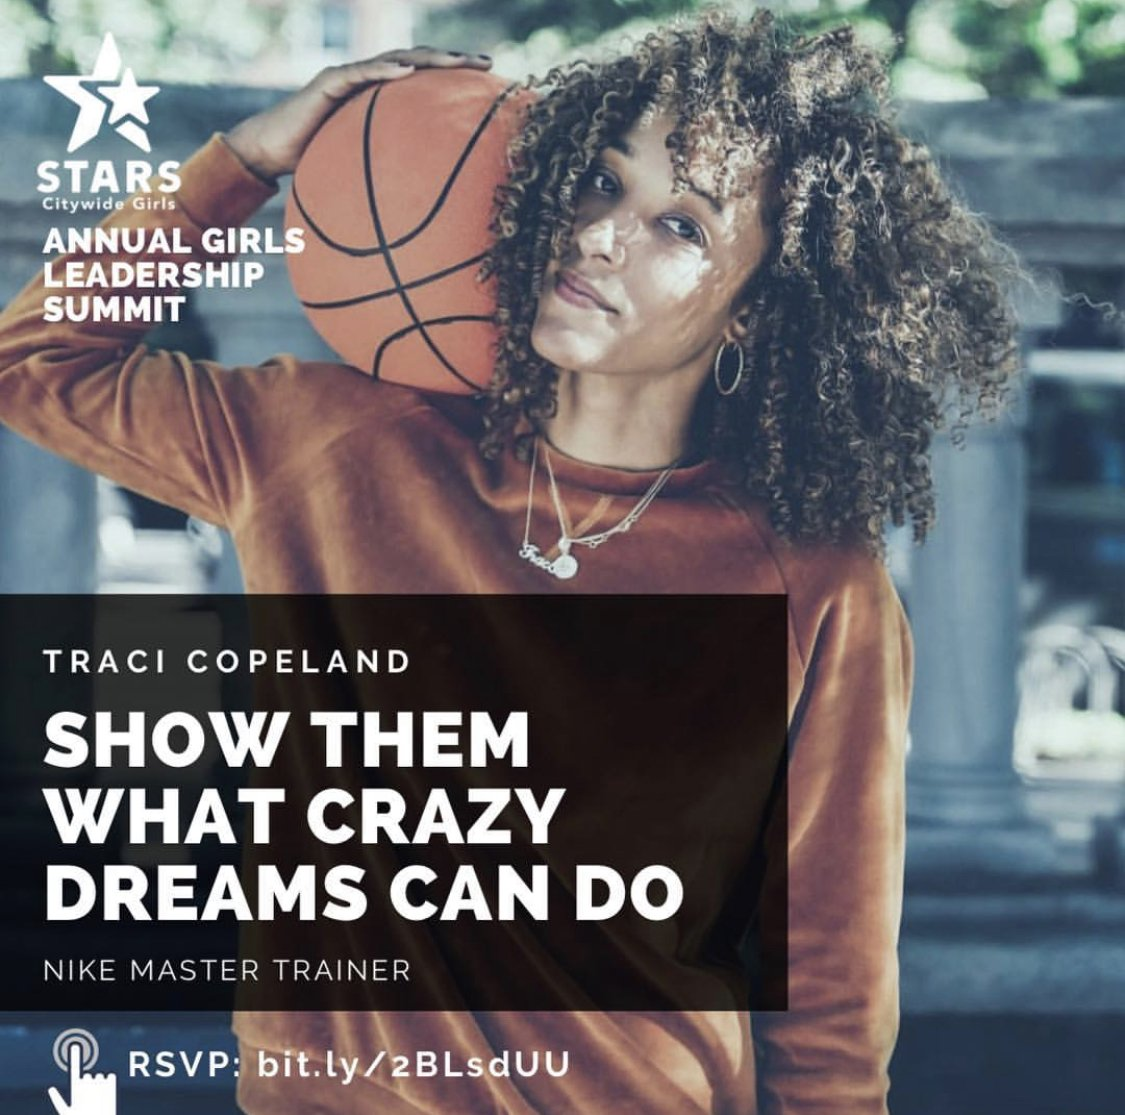 The line up of special guests for #STARSCGI 5th Annual Girls Leadership Summit on 4/23 is amazing! Can't wait for @Nike Master Trainer @yogaathlete RSVP to lisbett@girlswritenow.org ! For more information: https://t.co/wnTXnQ2jeM  @PowerPlayNYC https://t.co/3Mdu3l3zZ1